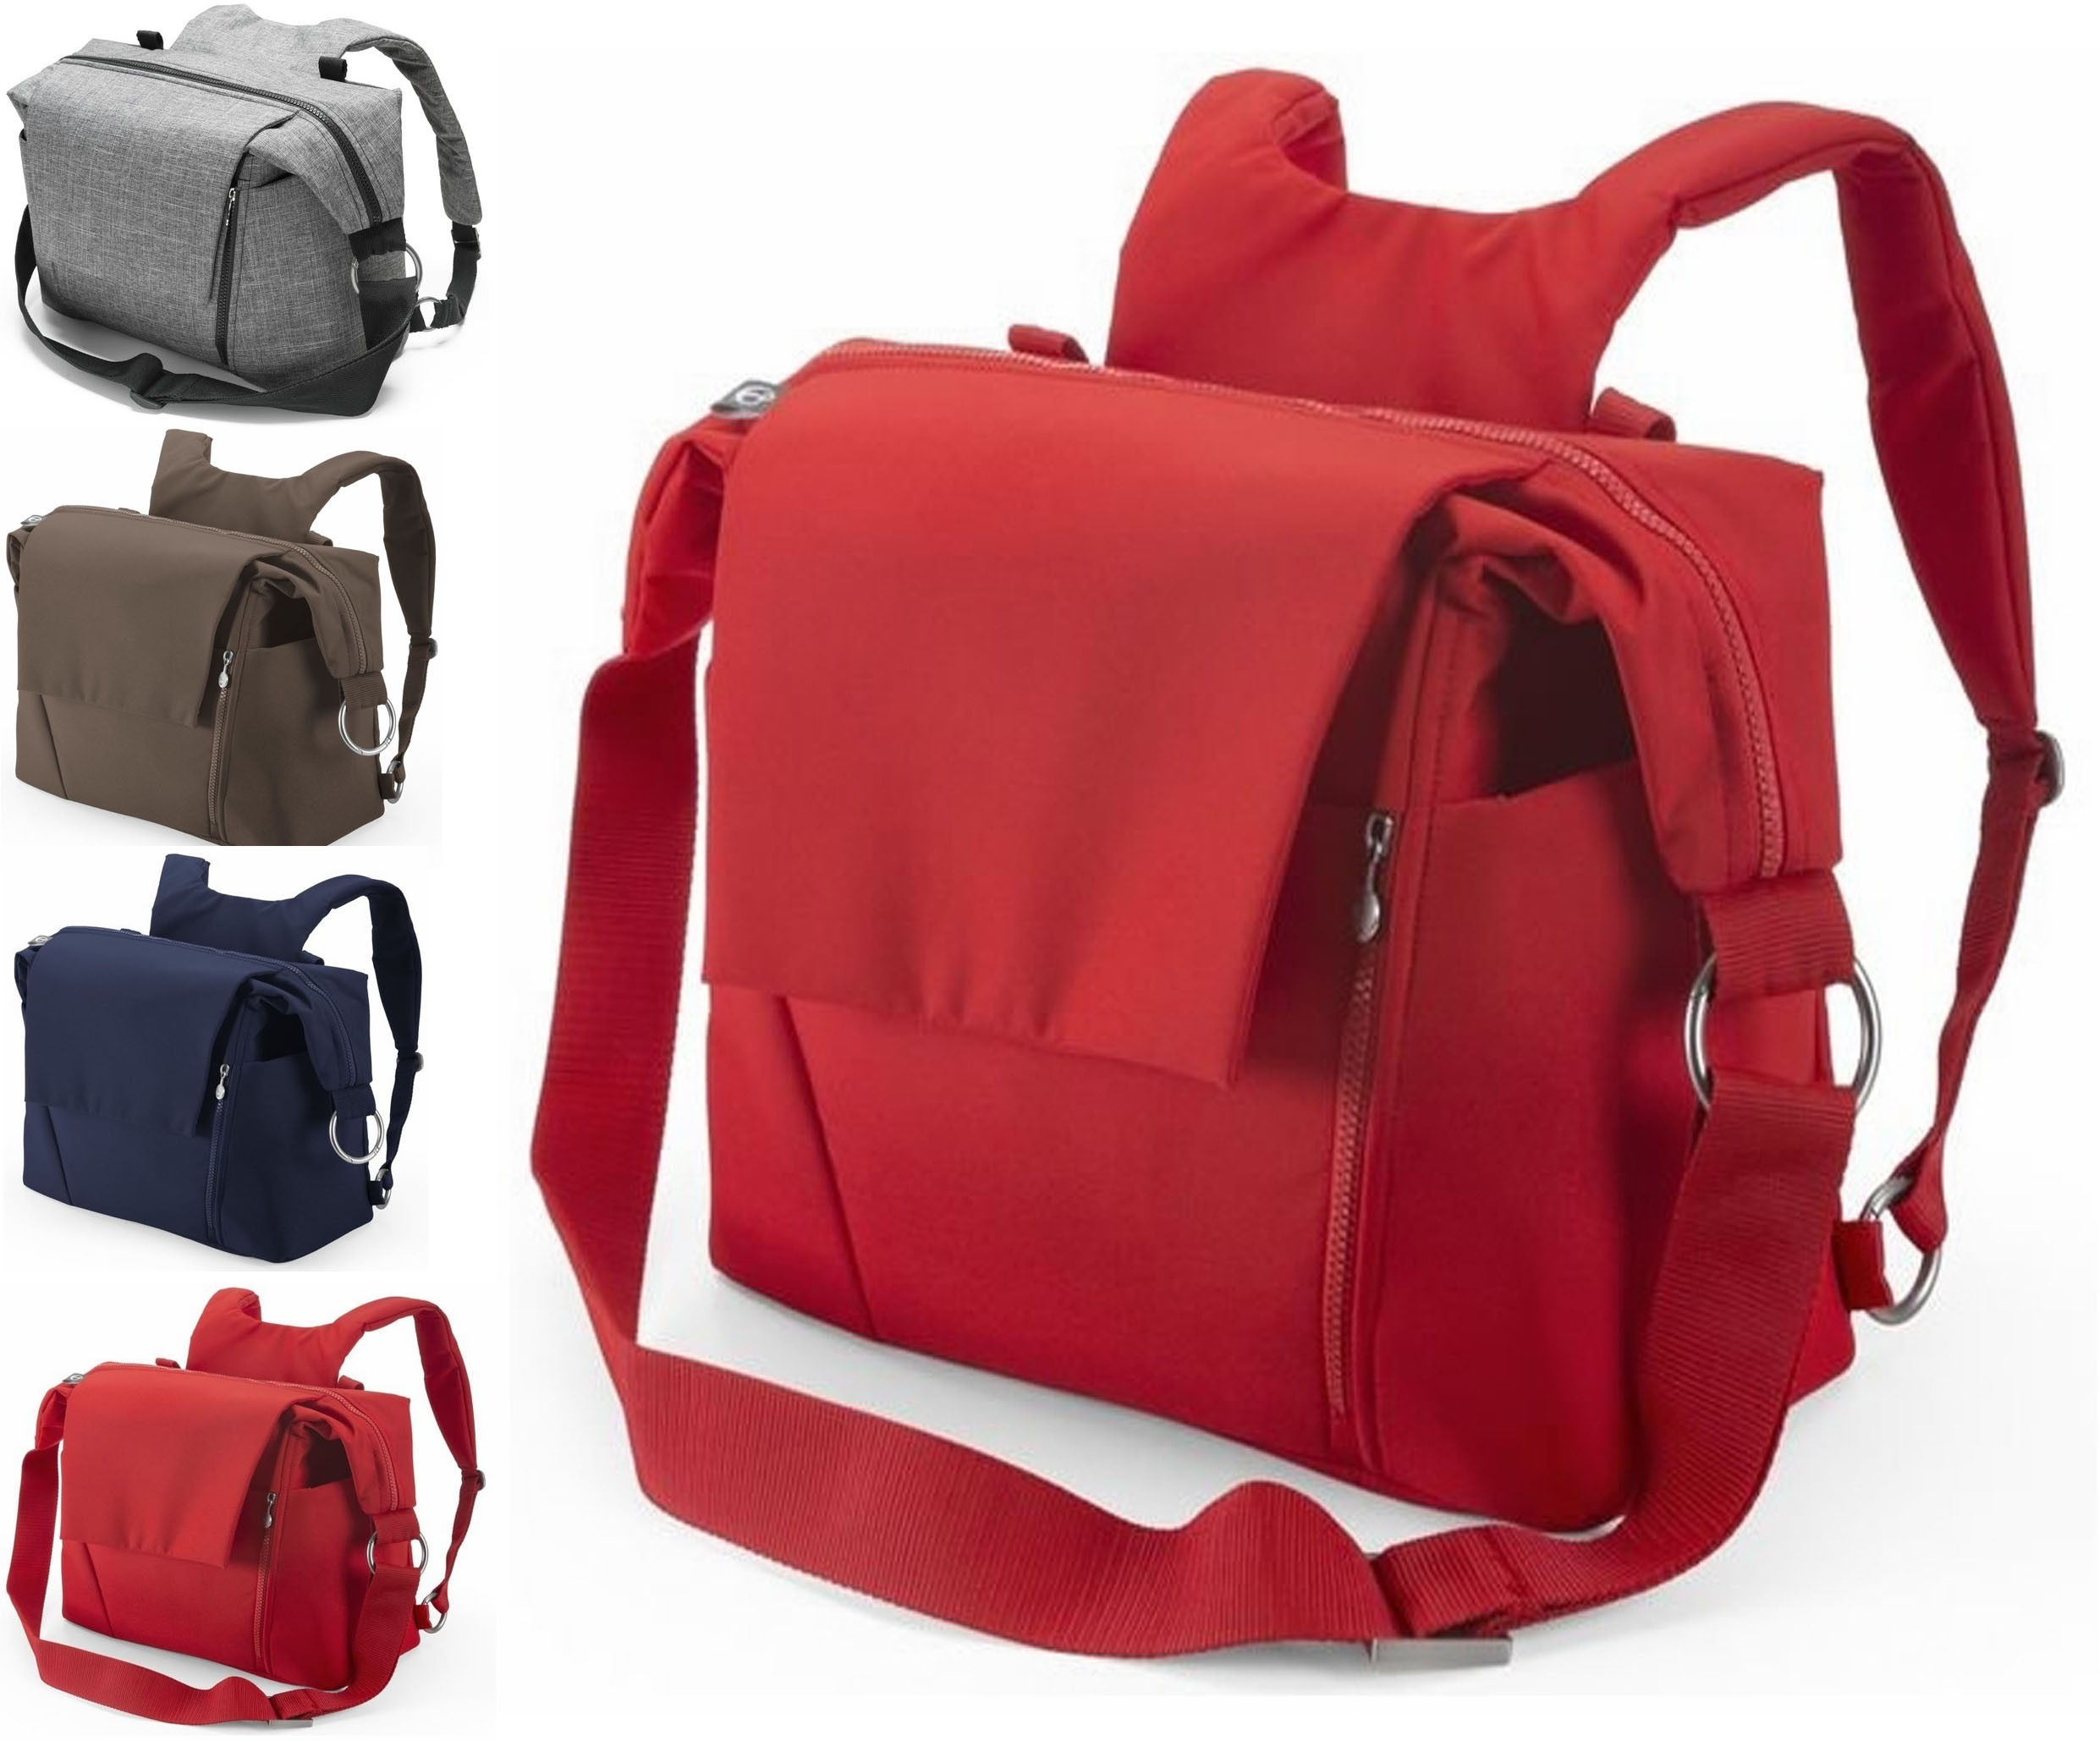 a0d608f0fc857 Stokke Changing Bag - Free Shipping - No Tax